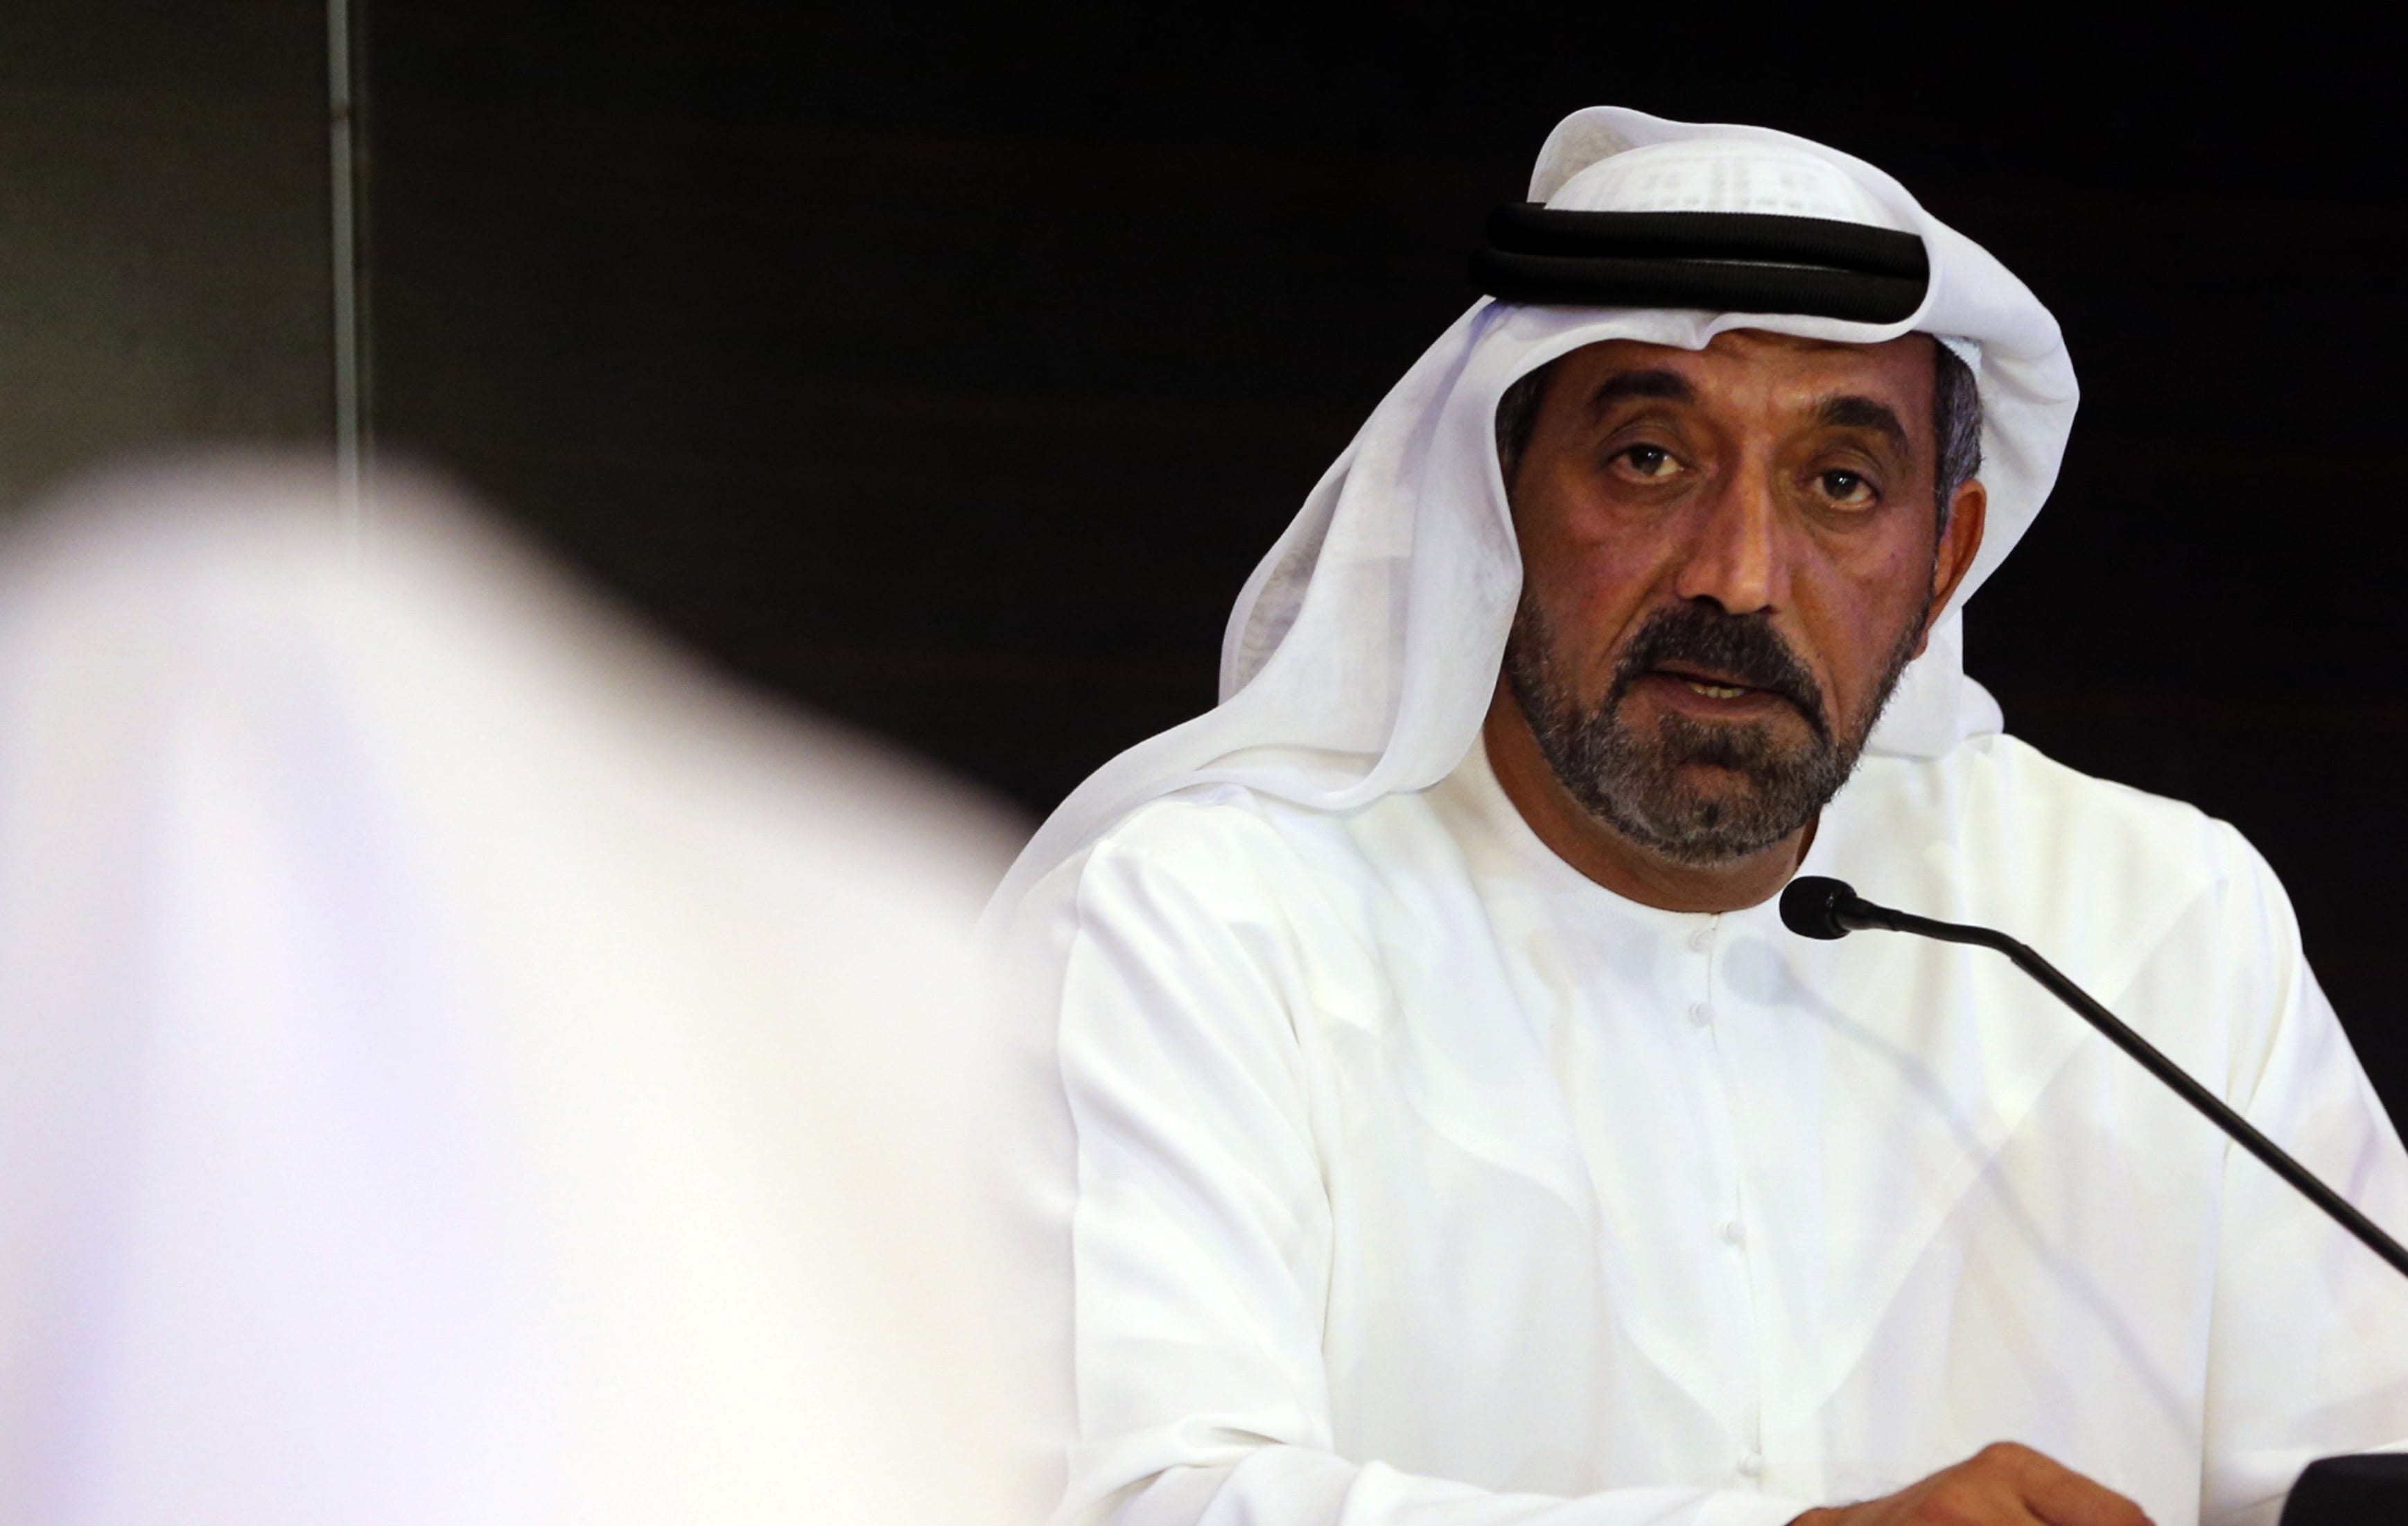 Emirates boss looking at possible Airbus option for its partner airline after Boeing 737 Max grounding